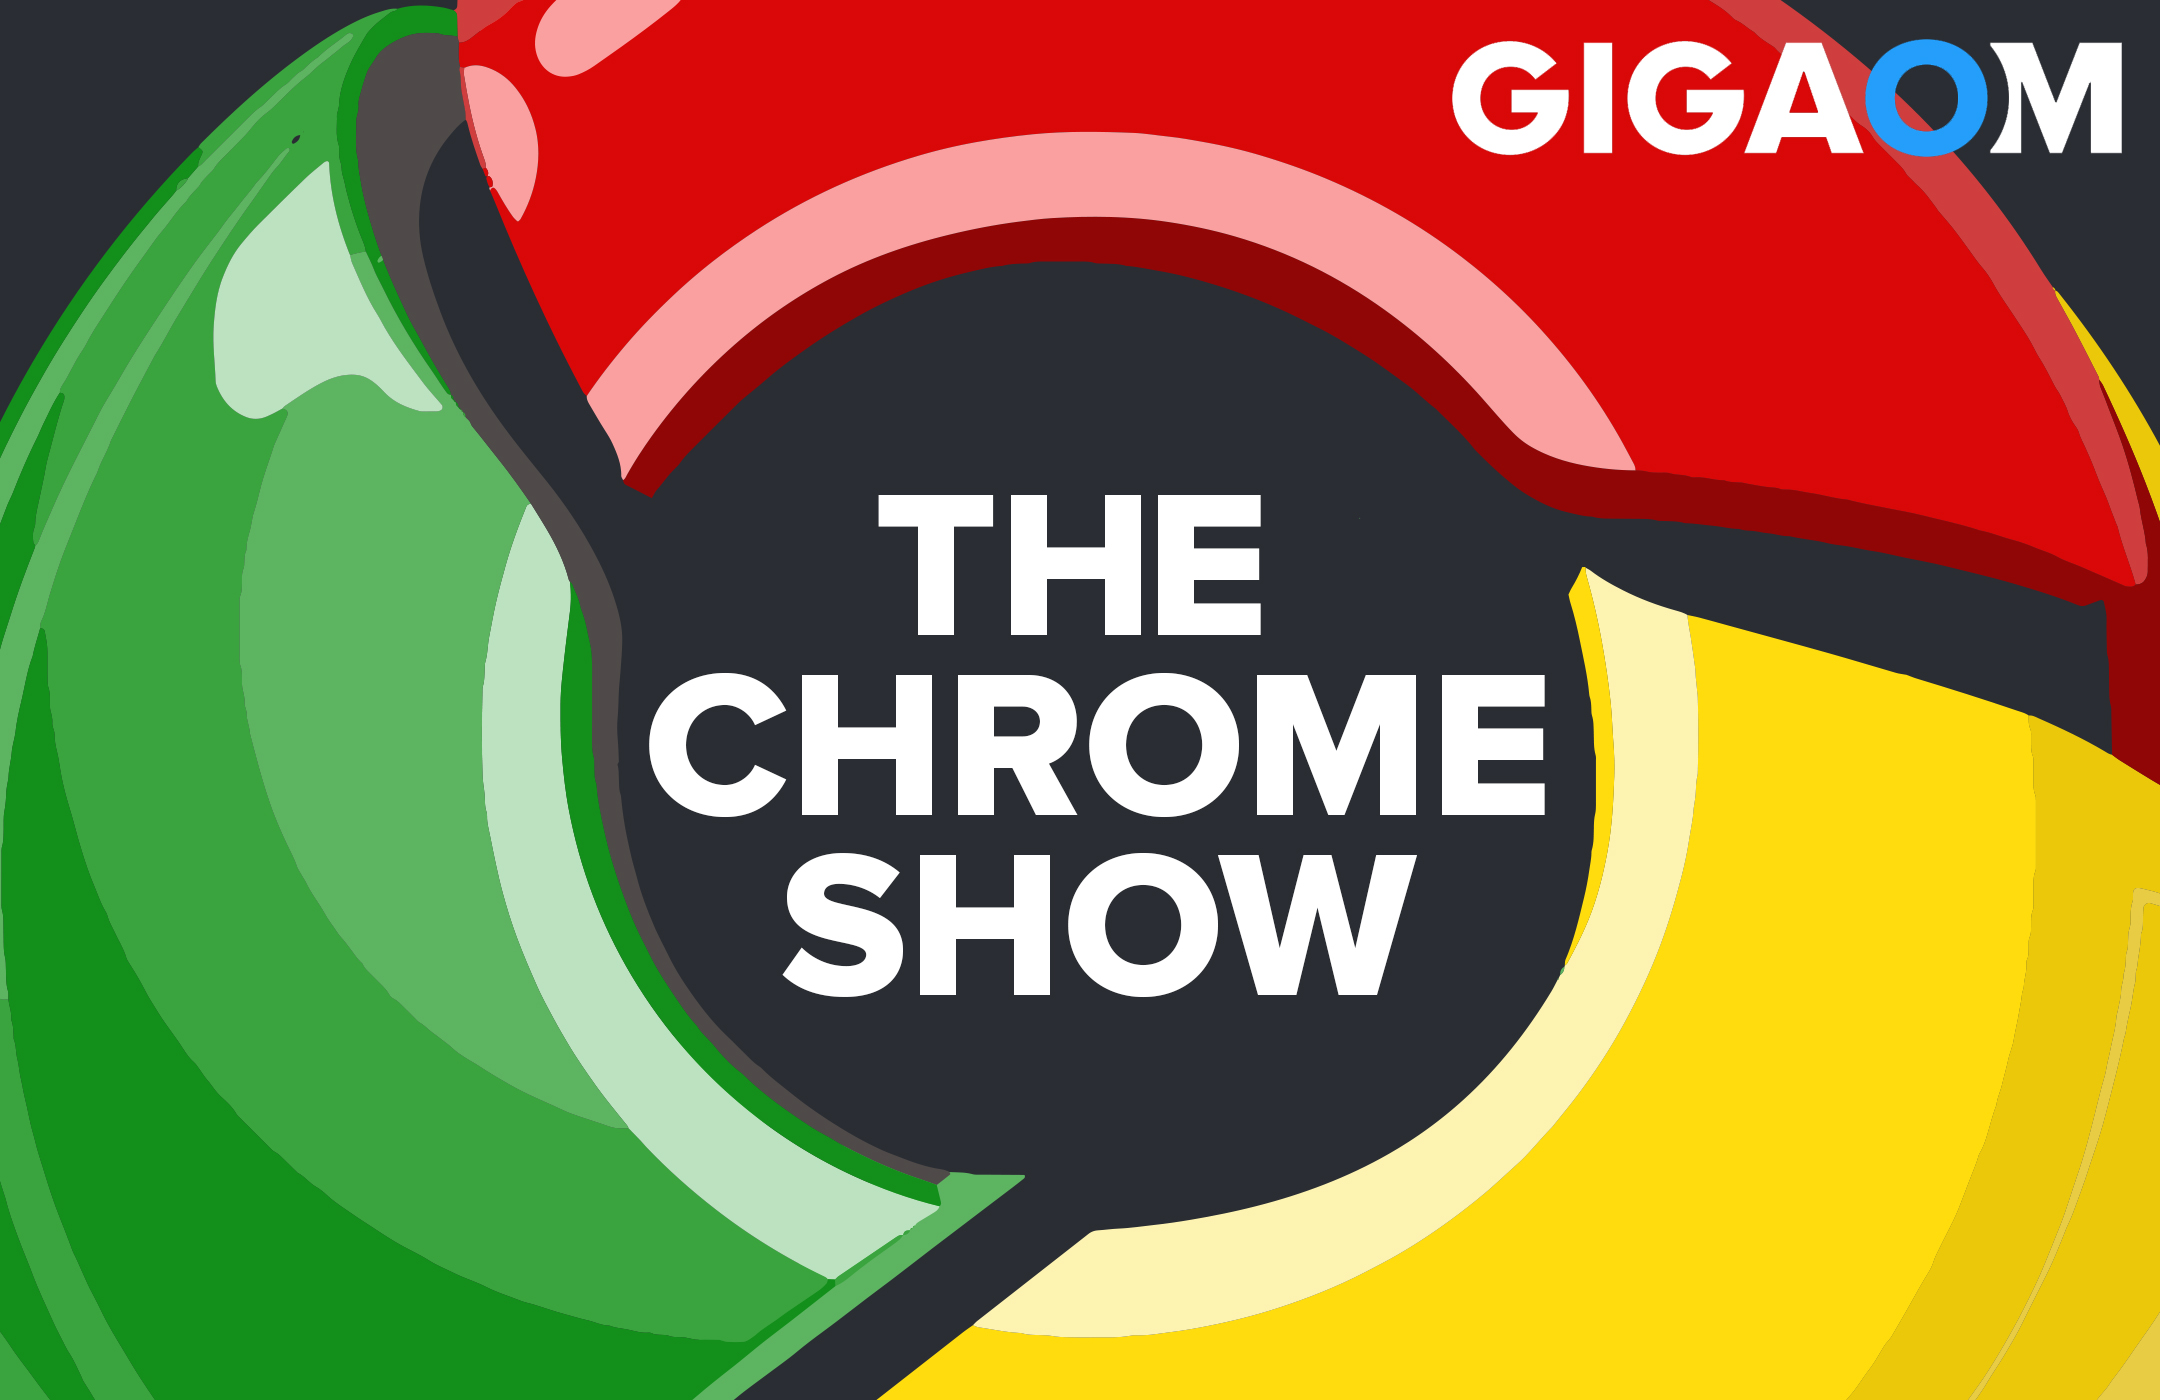 The Chrome Show 2014